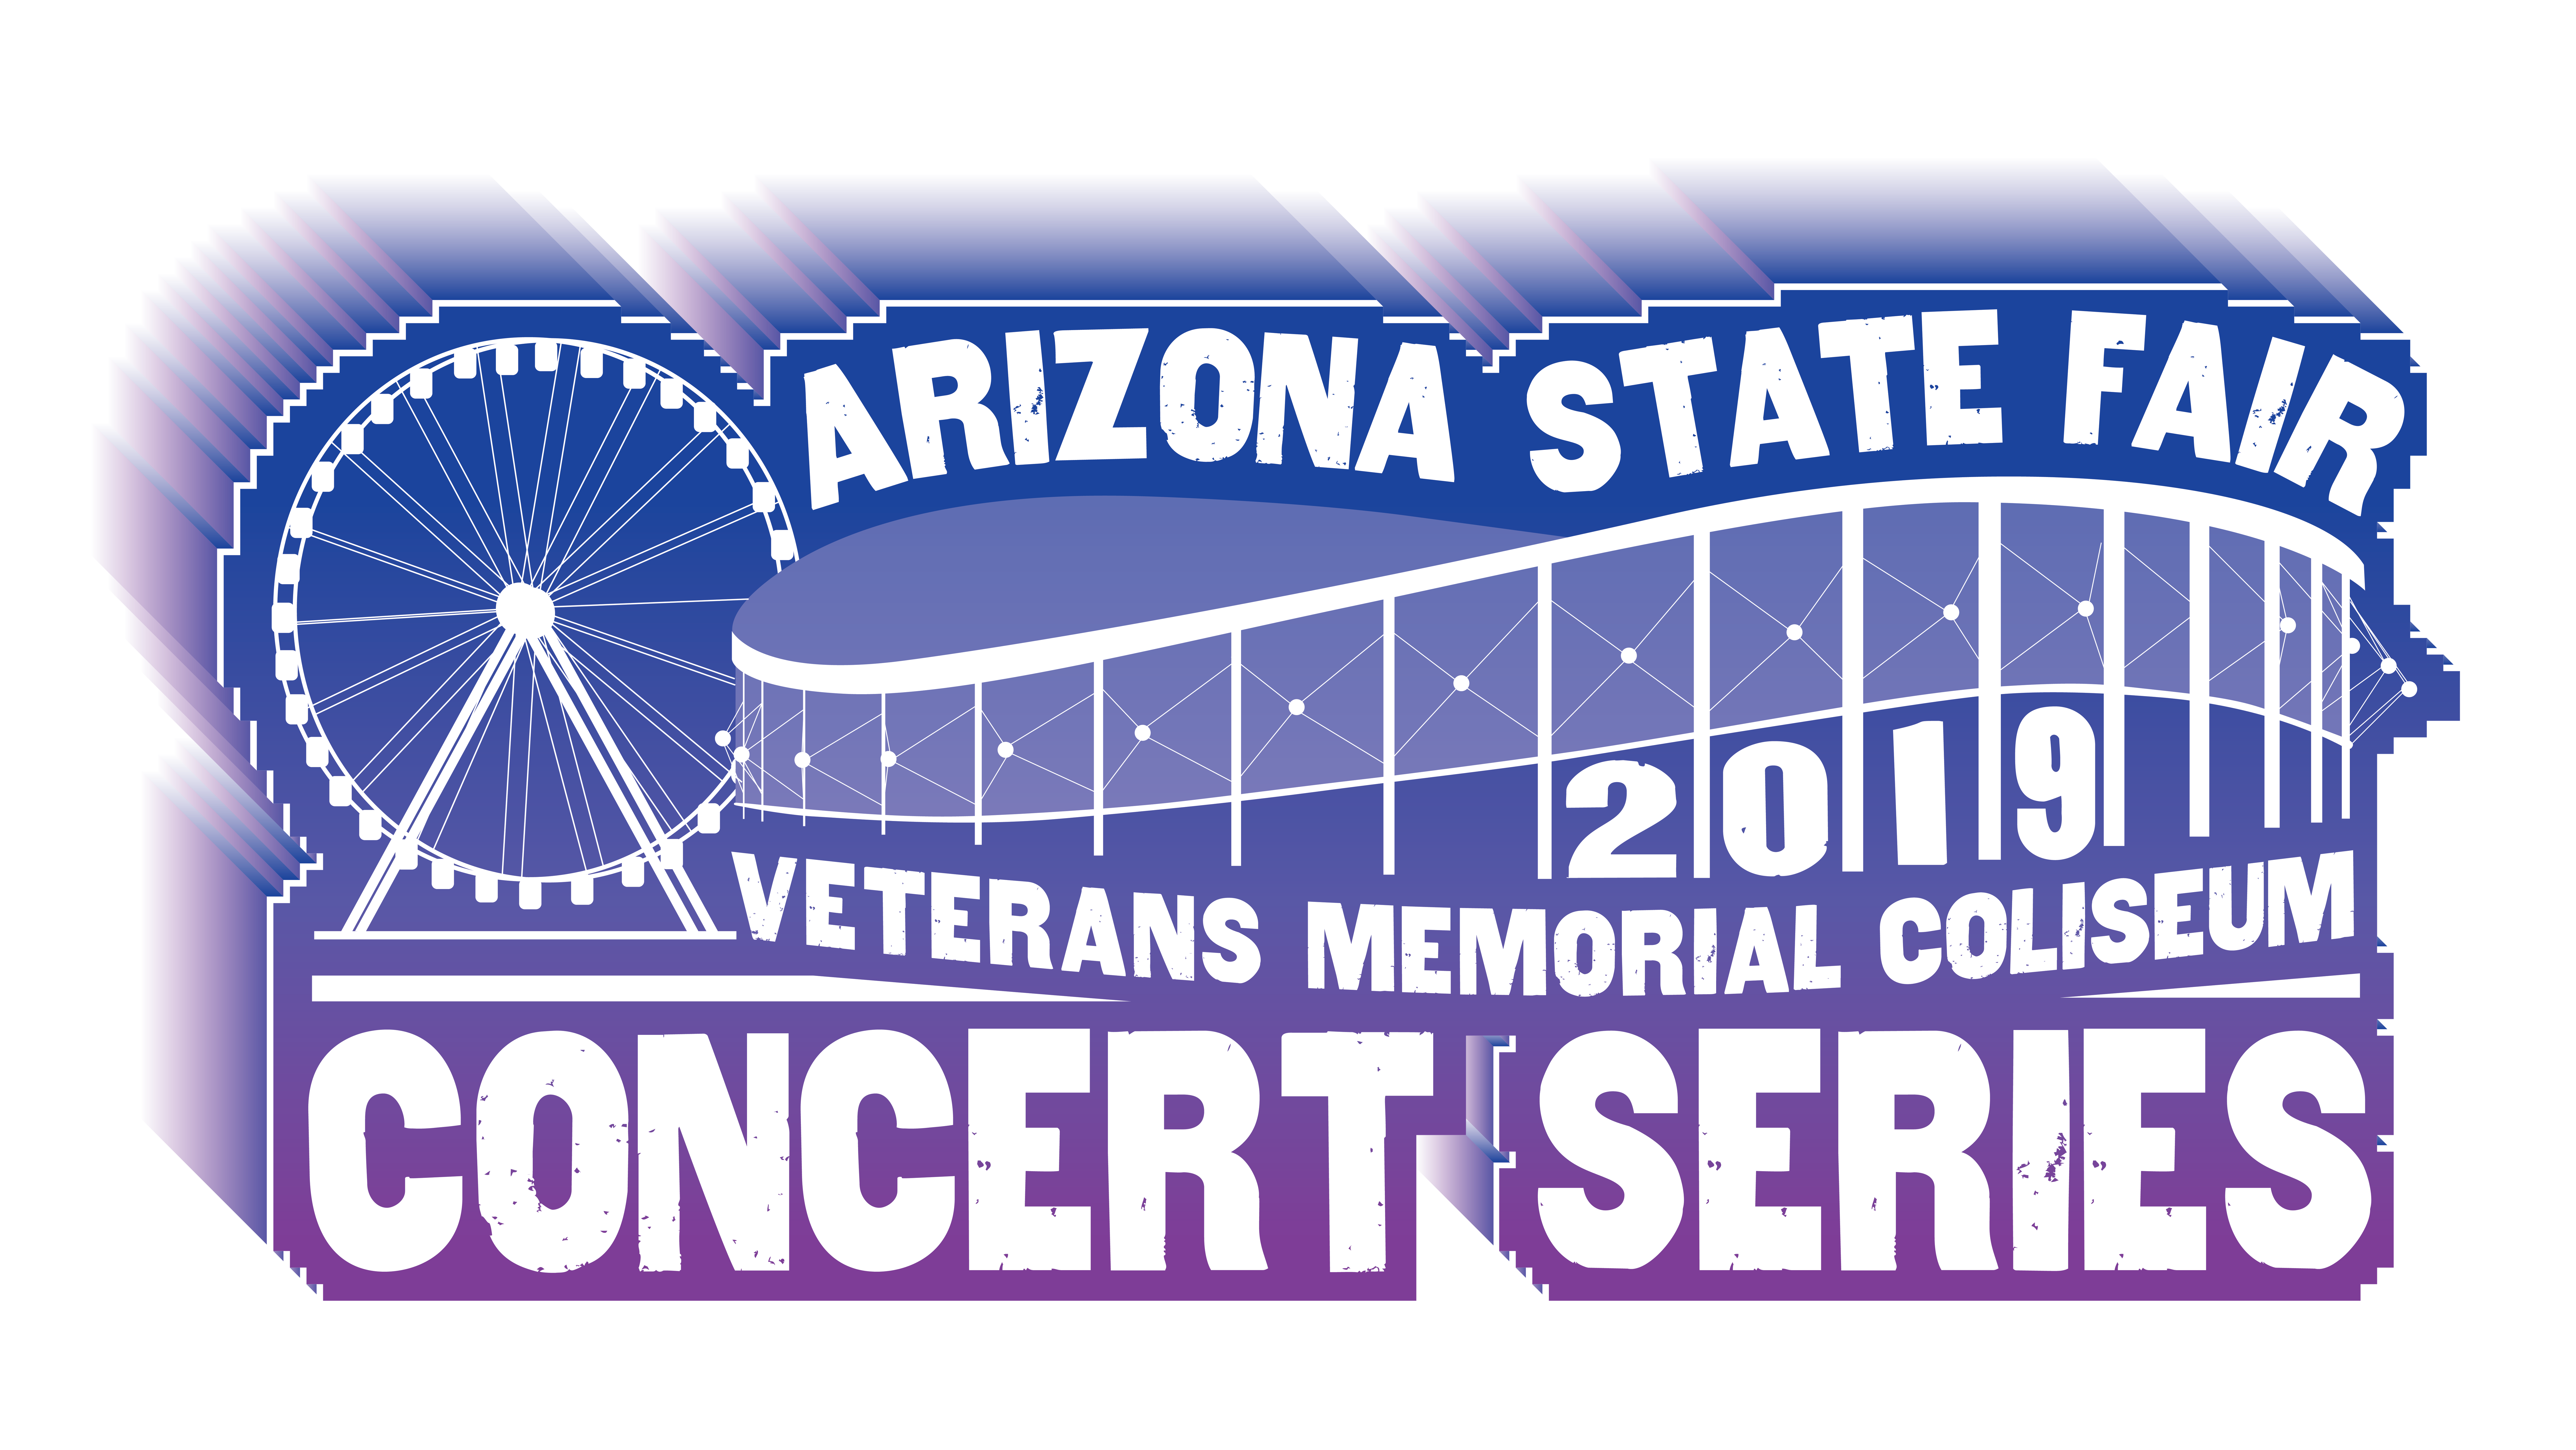 The Music to Experience at the 2019 Arizona State Fair